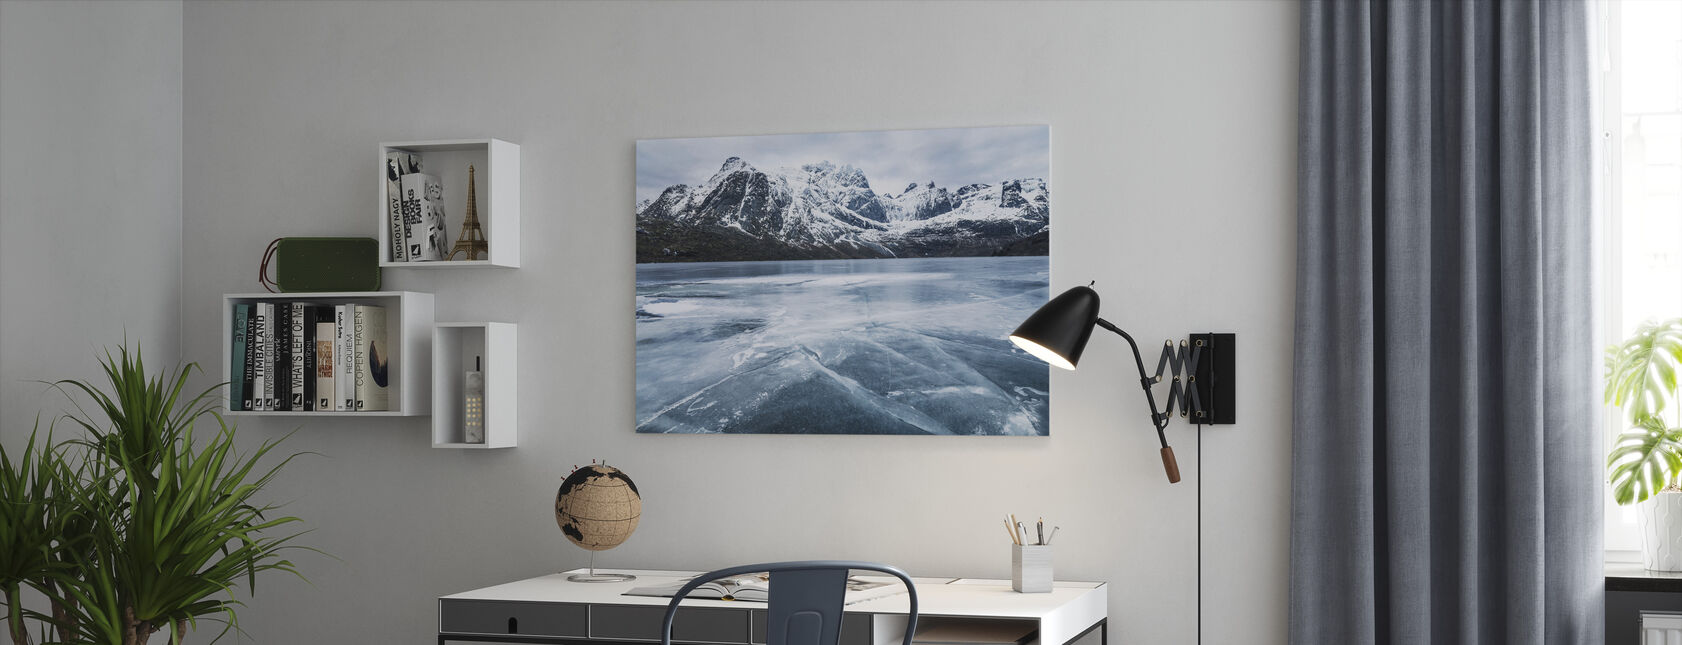 Frozen Water and Mountain Range - Canvas print - Office